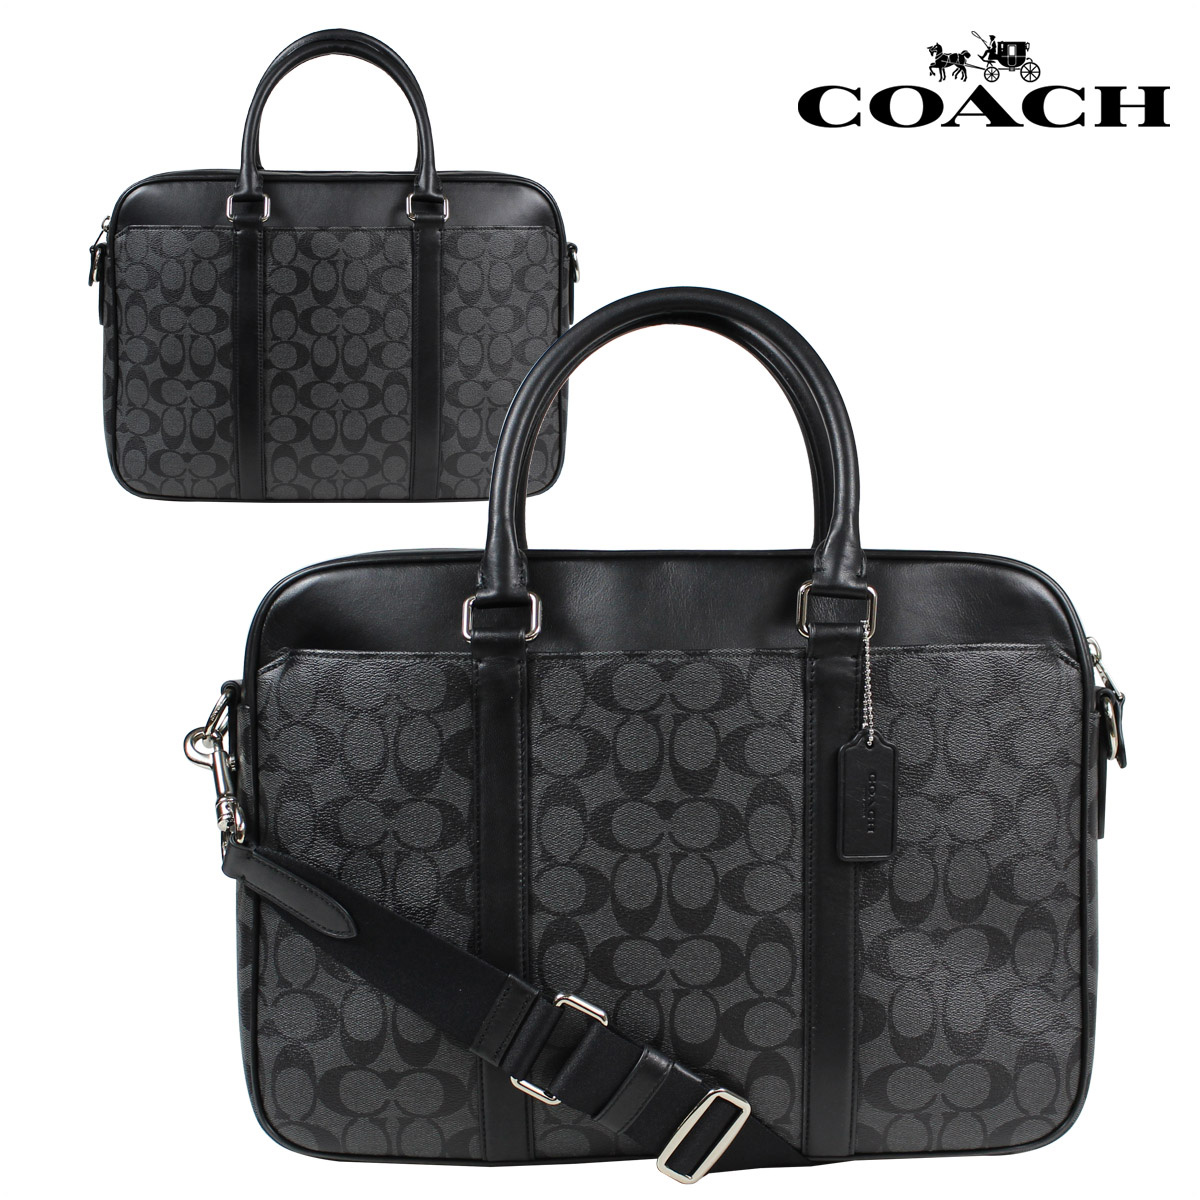 sugar online shop rakuten global market coach coach men 39 s bag business bag briefcase f54803. Black Bedroom Furniture Sets. Home Design Ideas